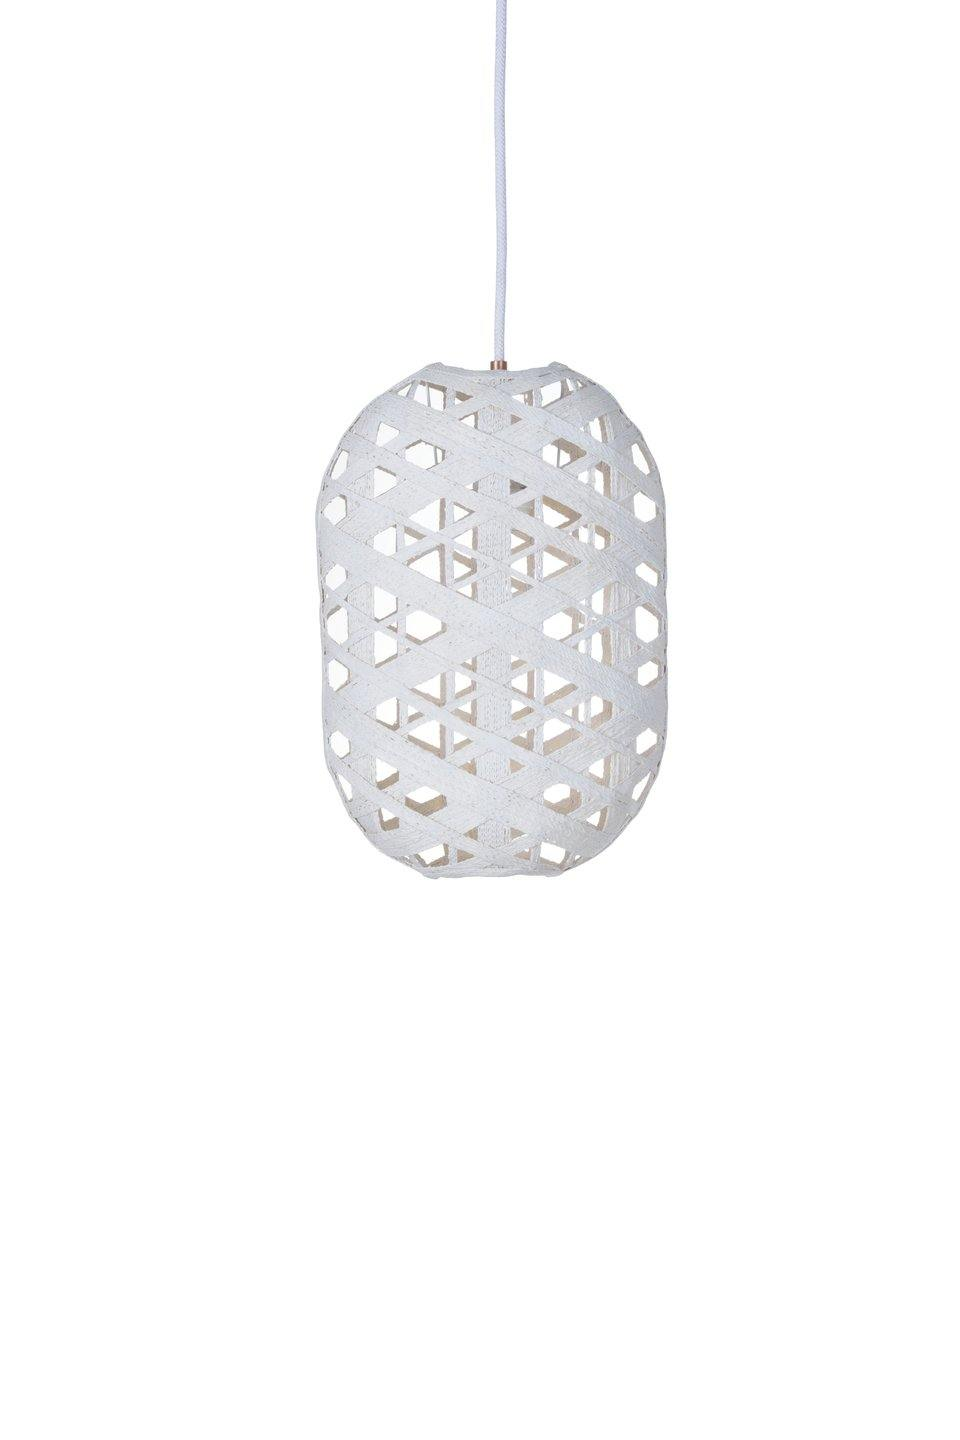 LAMPARA SUSPENSION CAPSULA S BLANCO